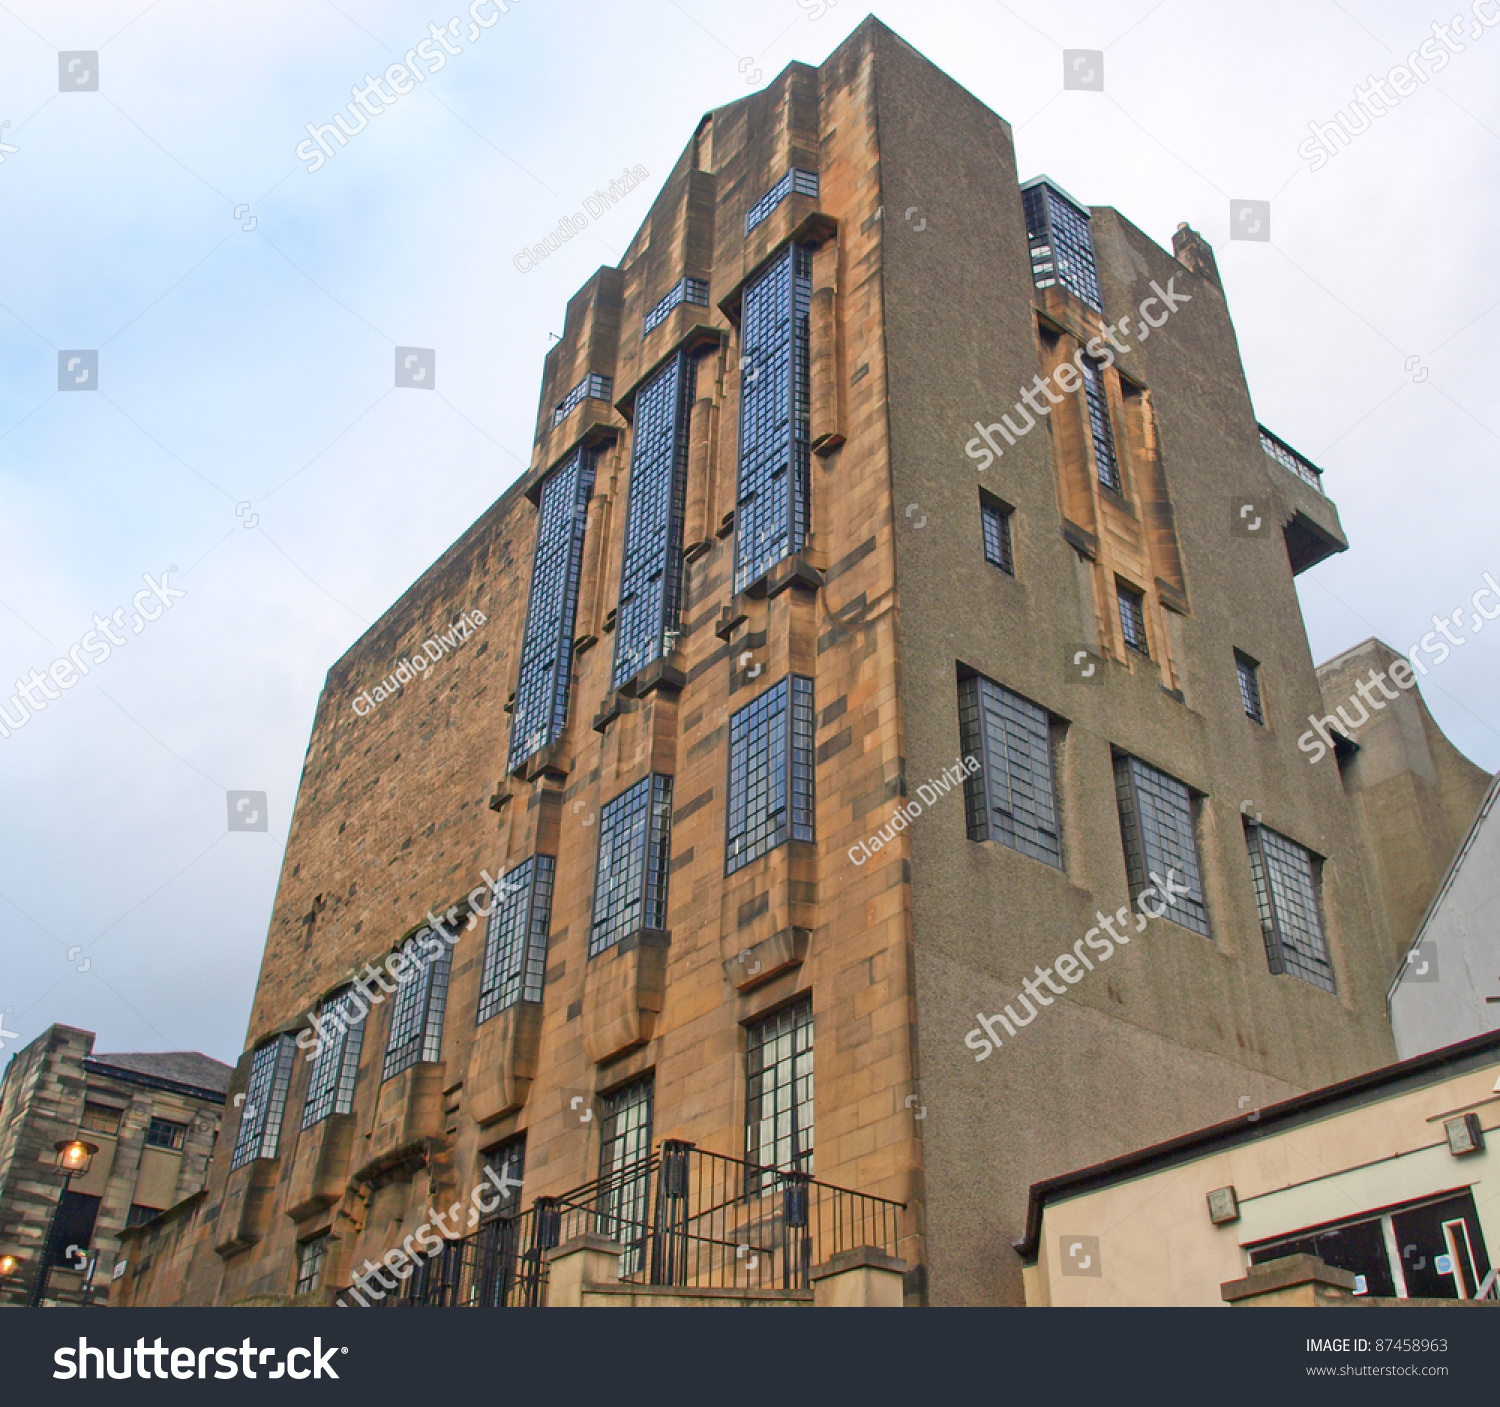 charles rennie mackintosh and scottish architecture essay Find out how charles rennie mackintosh influences glasgow manipulating his materials to take part in his vision of 'total design', mackintosh knew how to instil wonder each square, line.